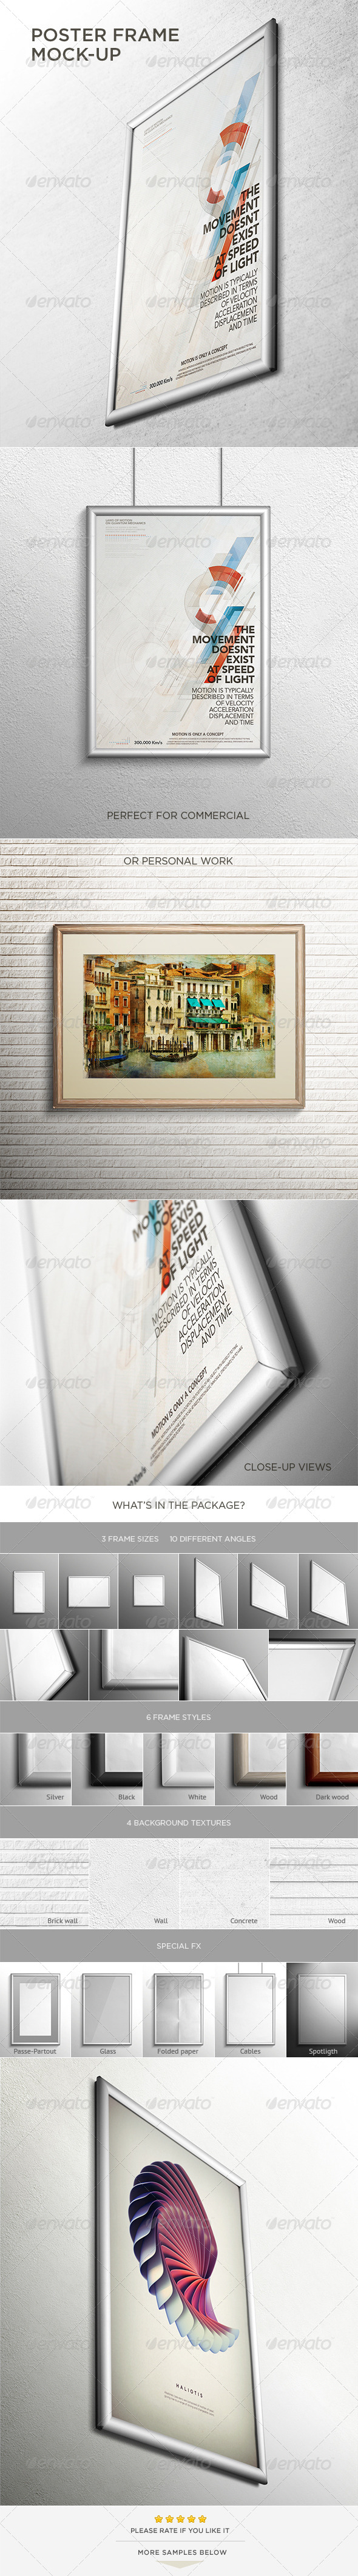 GraphicRiver Poster Frame Mock-Up 4530020